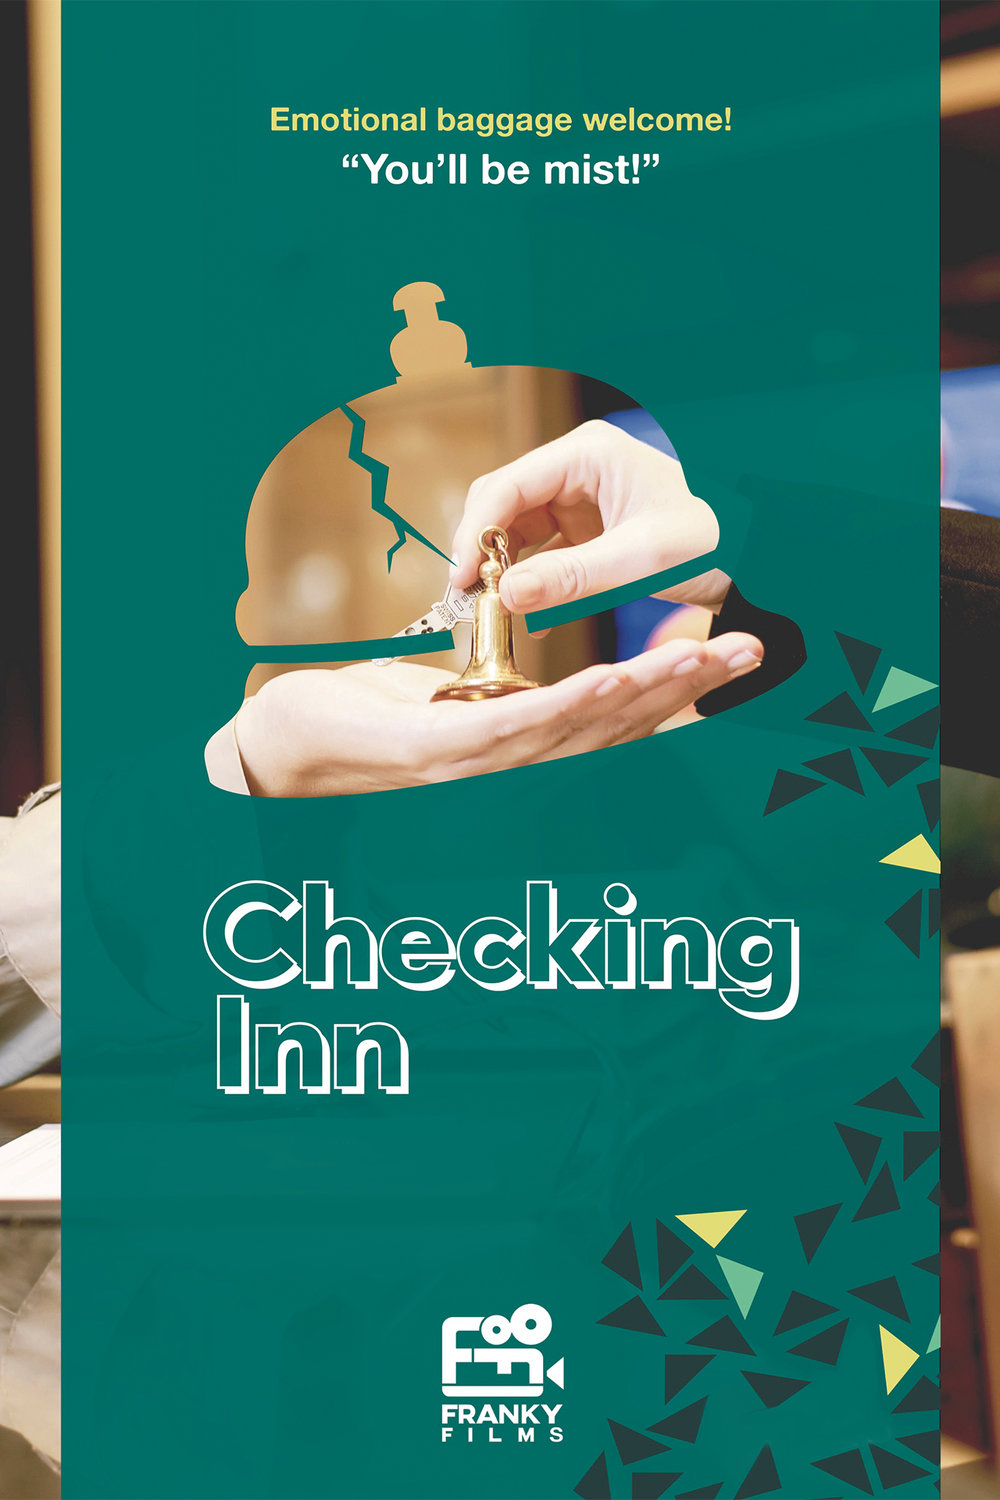 Checking INN Poster.jpg